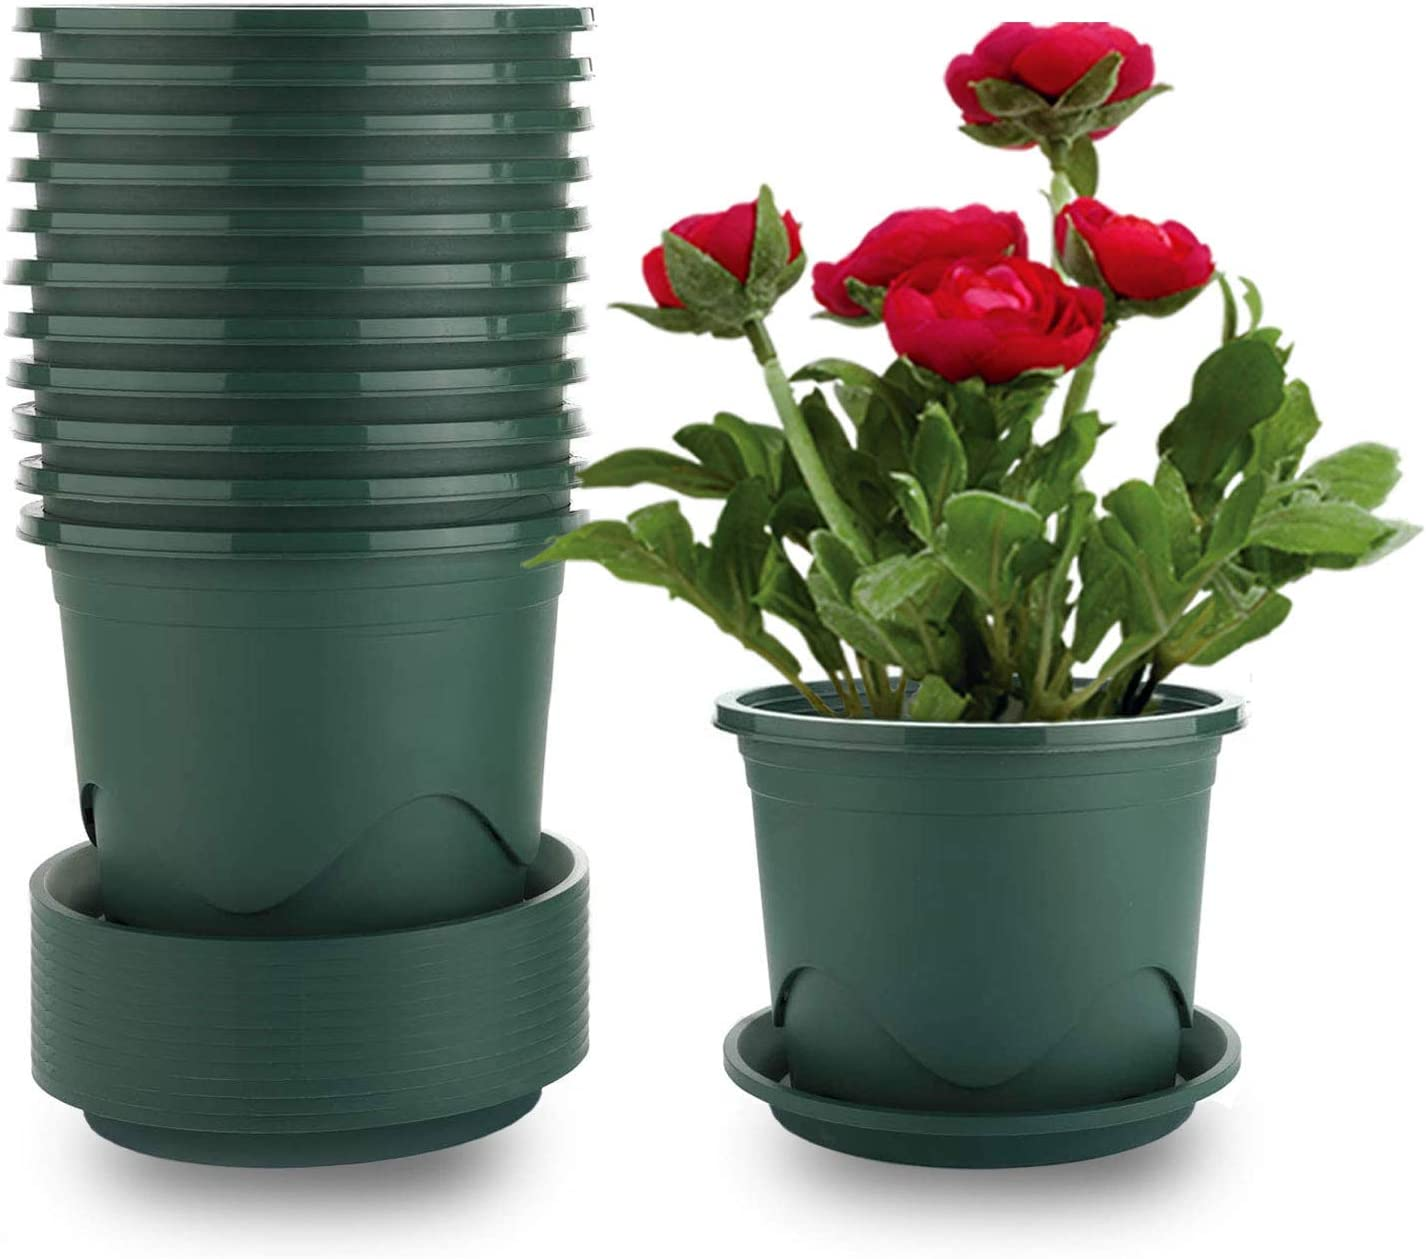 MOHENA Plant Pots with Saucers - 0.5 Gallon 6.5 Inch Plastic Dark Green Set of 12, Root-Control Nursery Seedling Planter Garden Flower Pot Container for Indoor Outdoor Bonsai Plants, Aloe, Herb